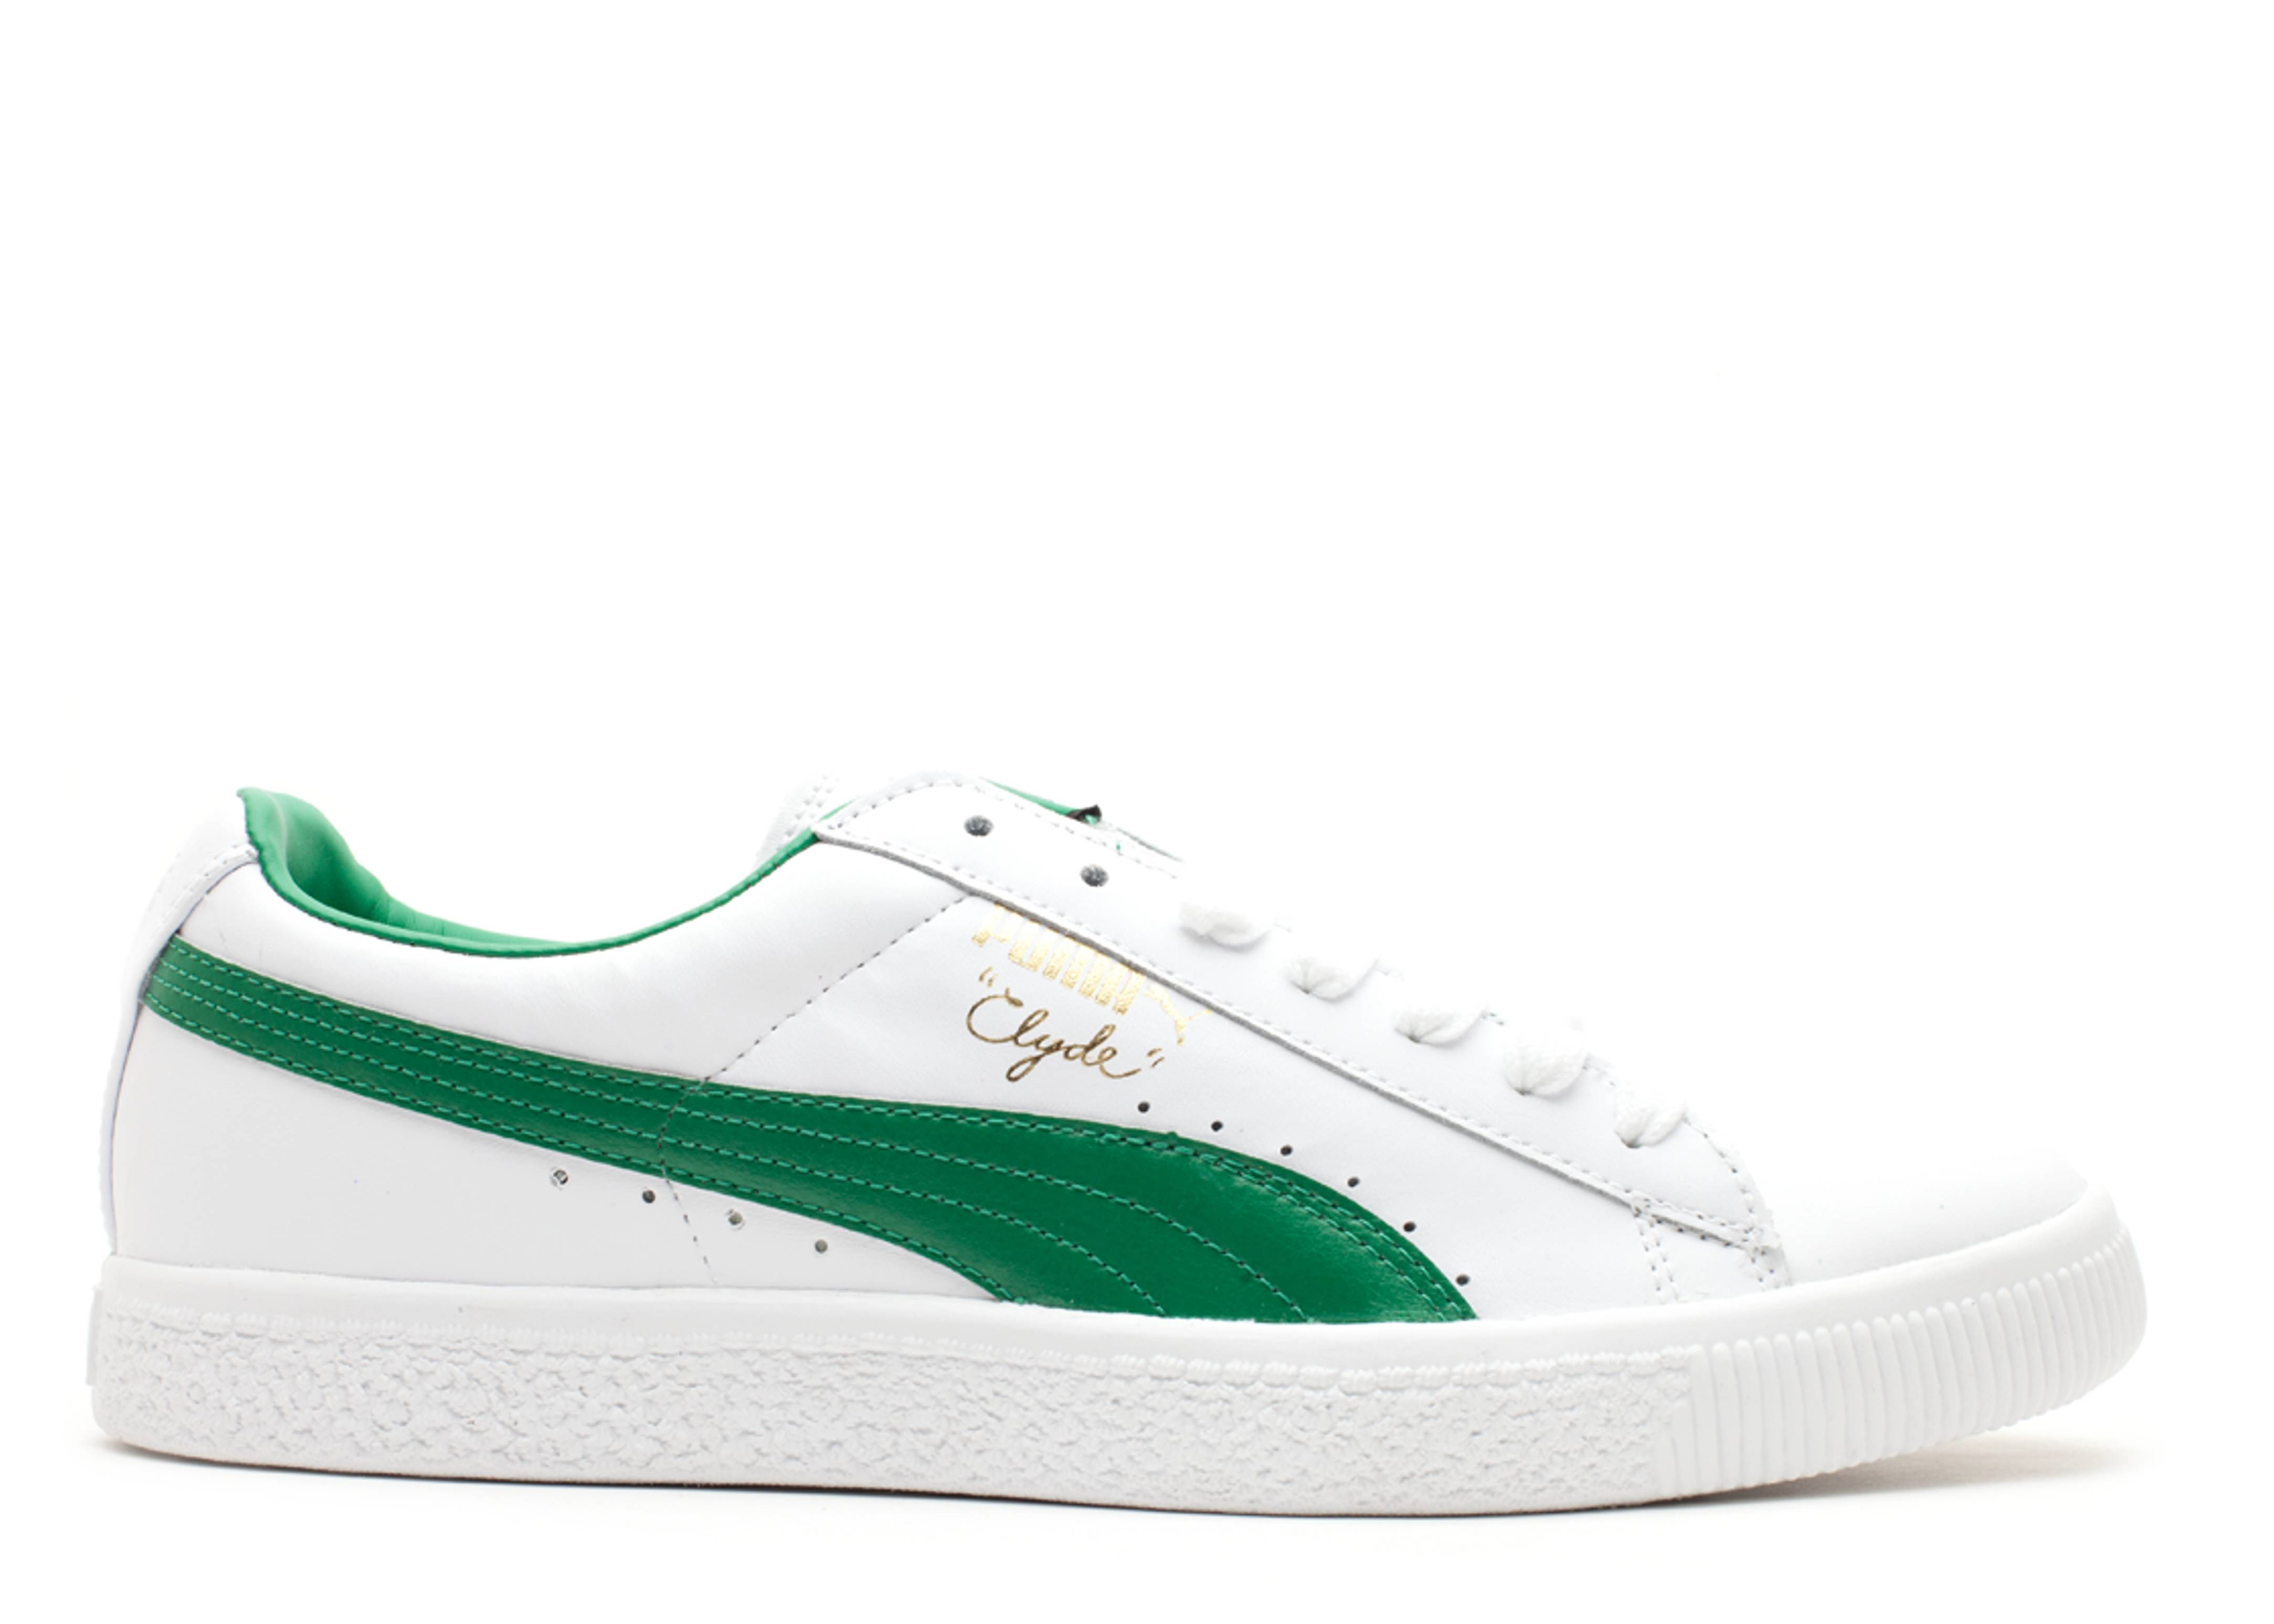 hot sale online d008f aa789 Clyde Leather Fs - Puma - 35277301 - white/amazon   Flight Club